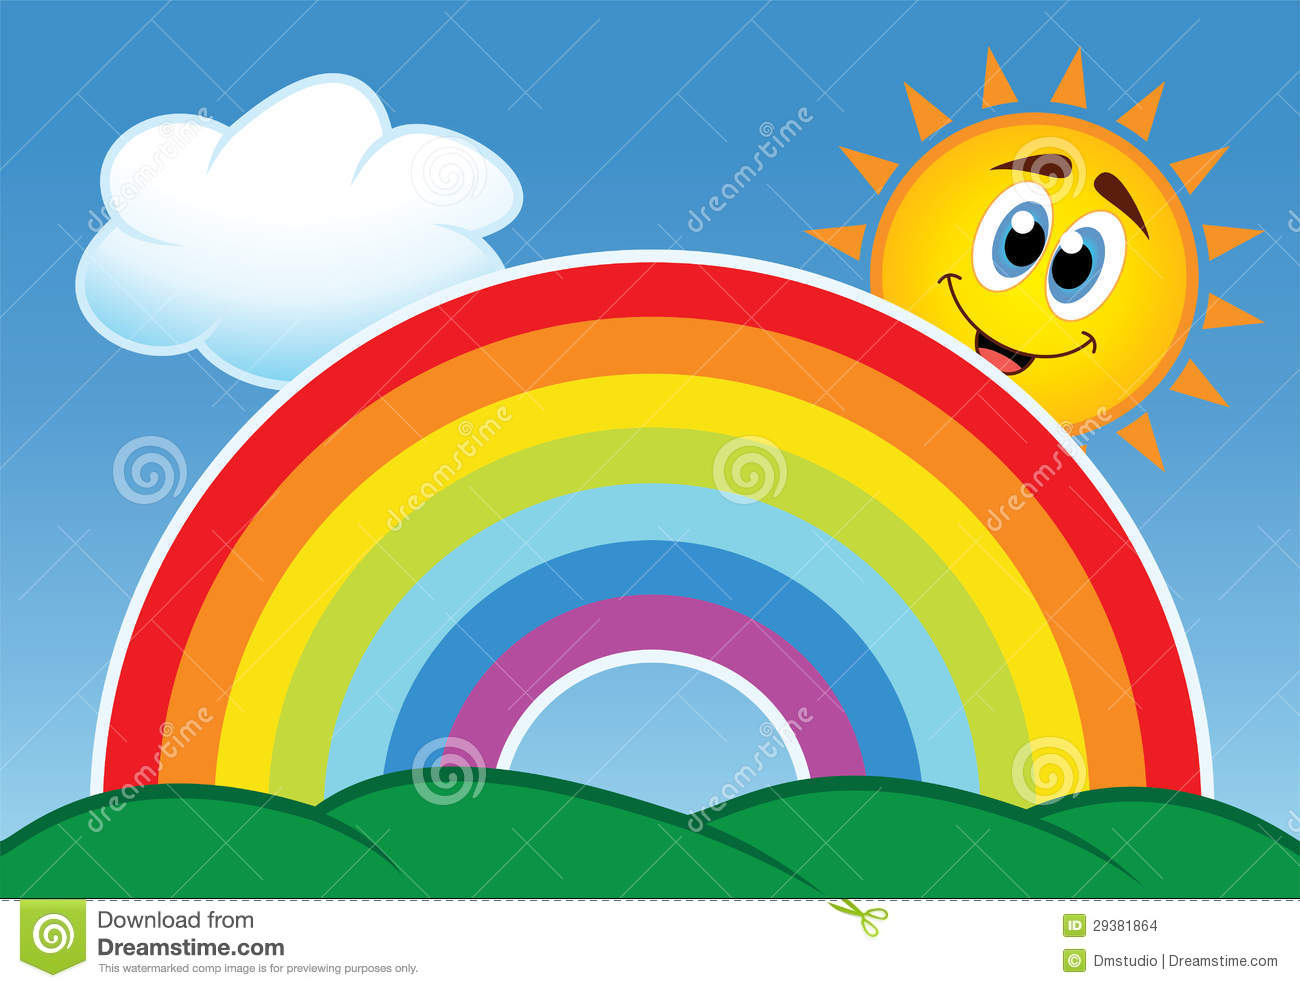 Vector illustration of rainbow, cloud and happy sun in the sky.